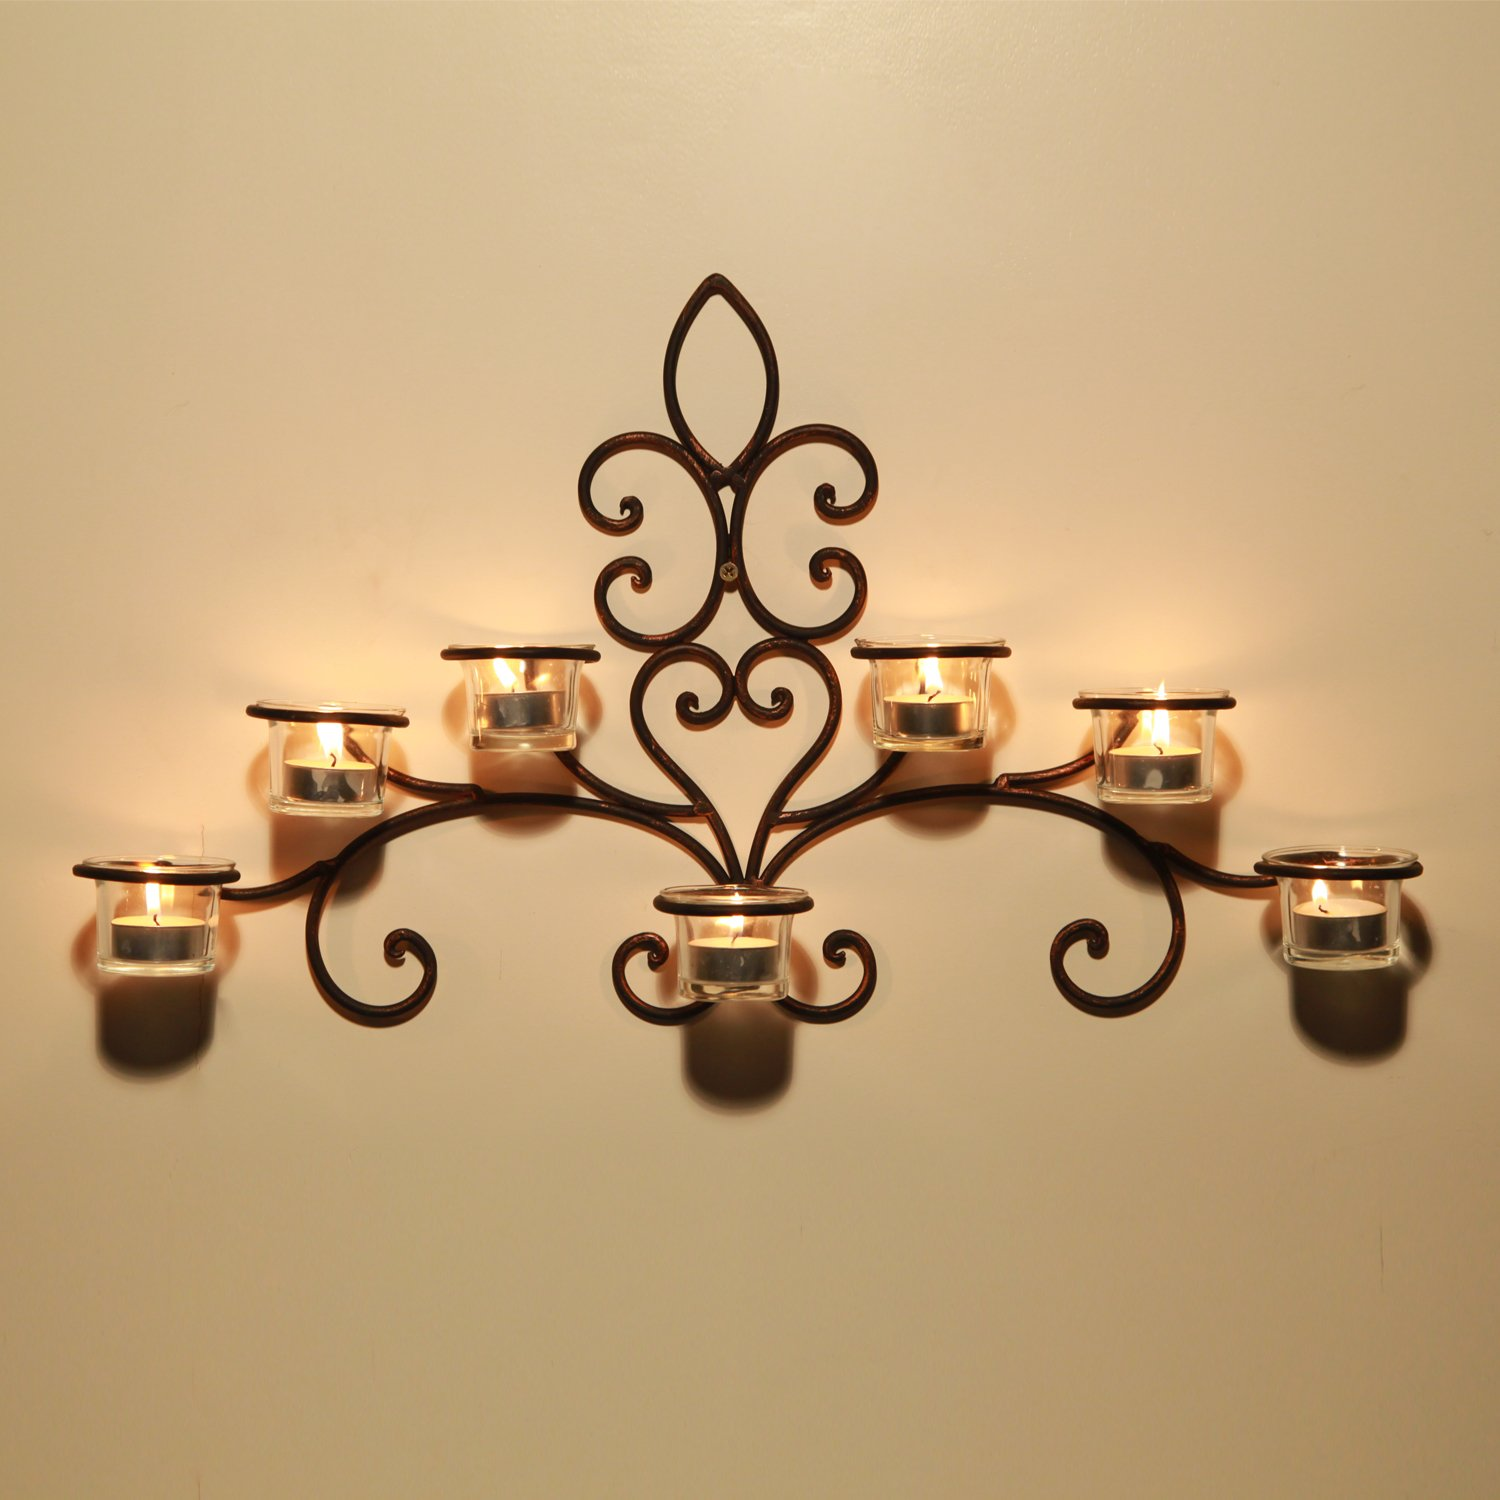 metal sconces glass mounted black holders bubble wall sconce candle